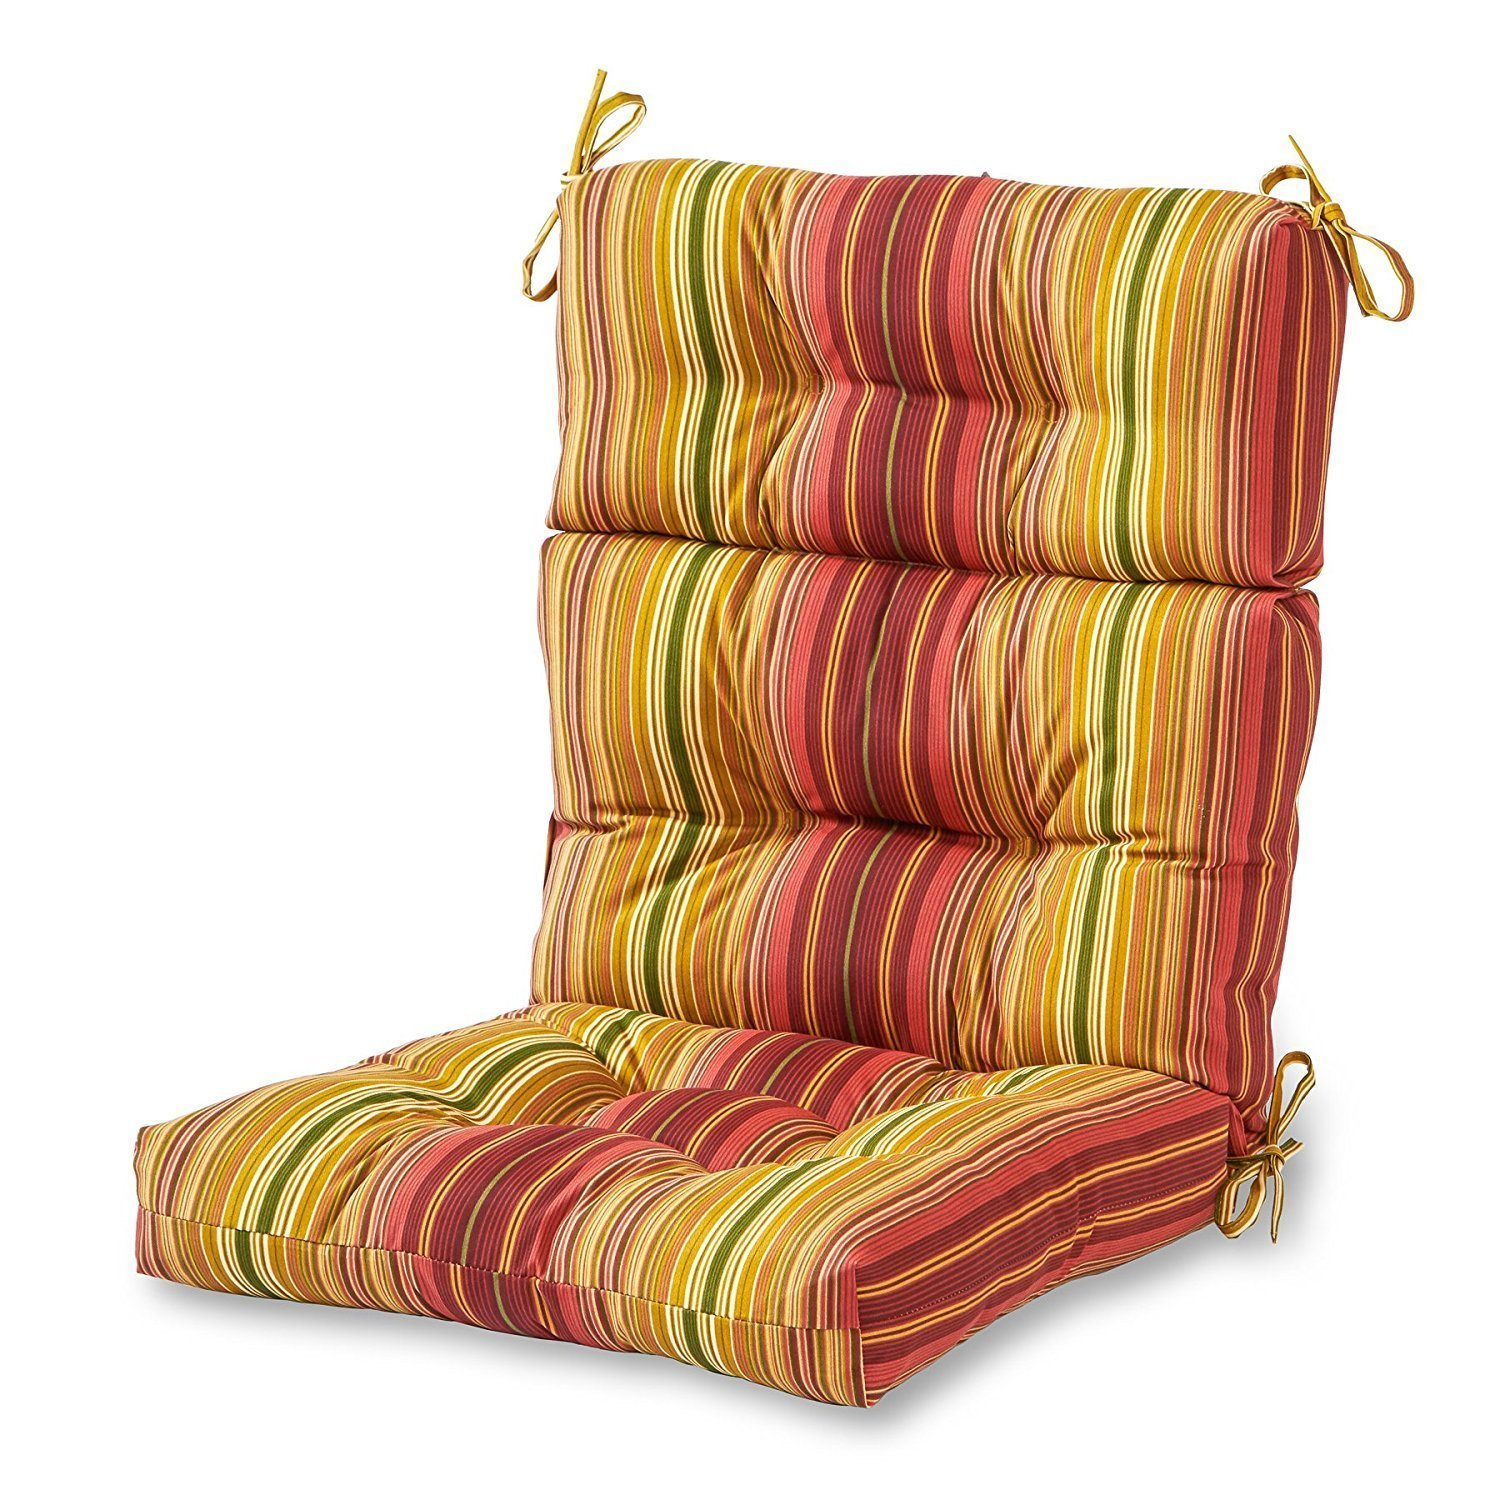 chair cushions with tie backs canyon swing queenstown in new zealand garden home furniture design